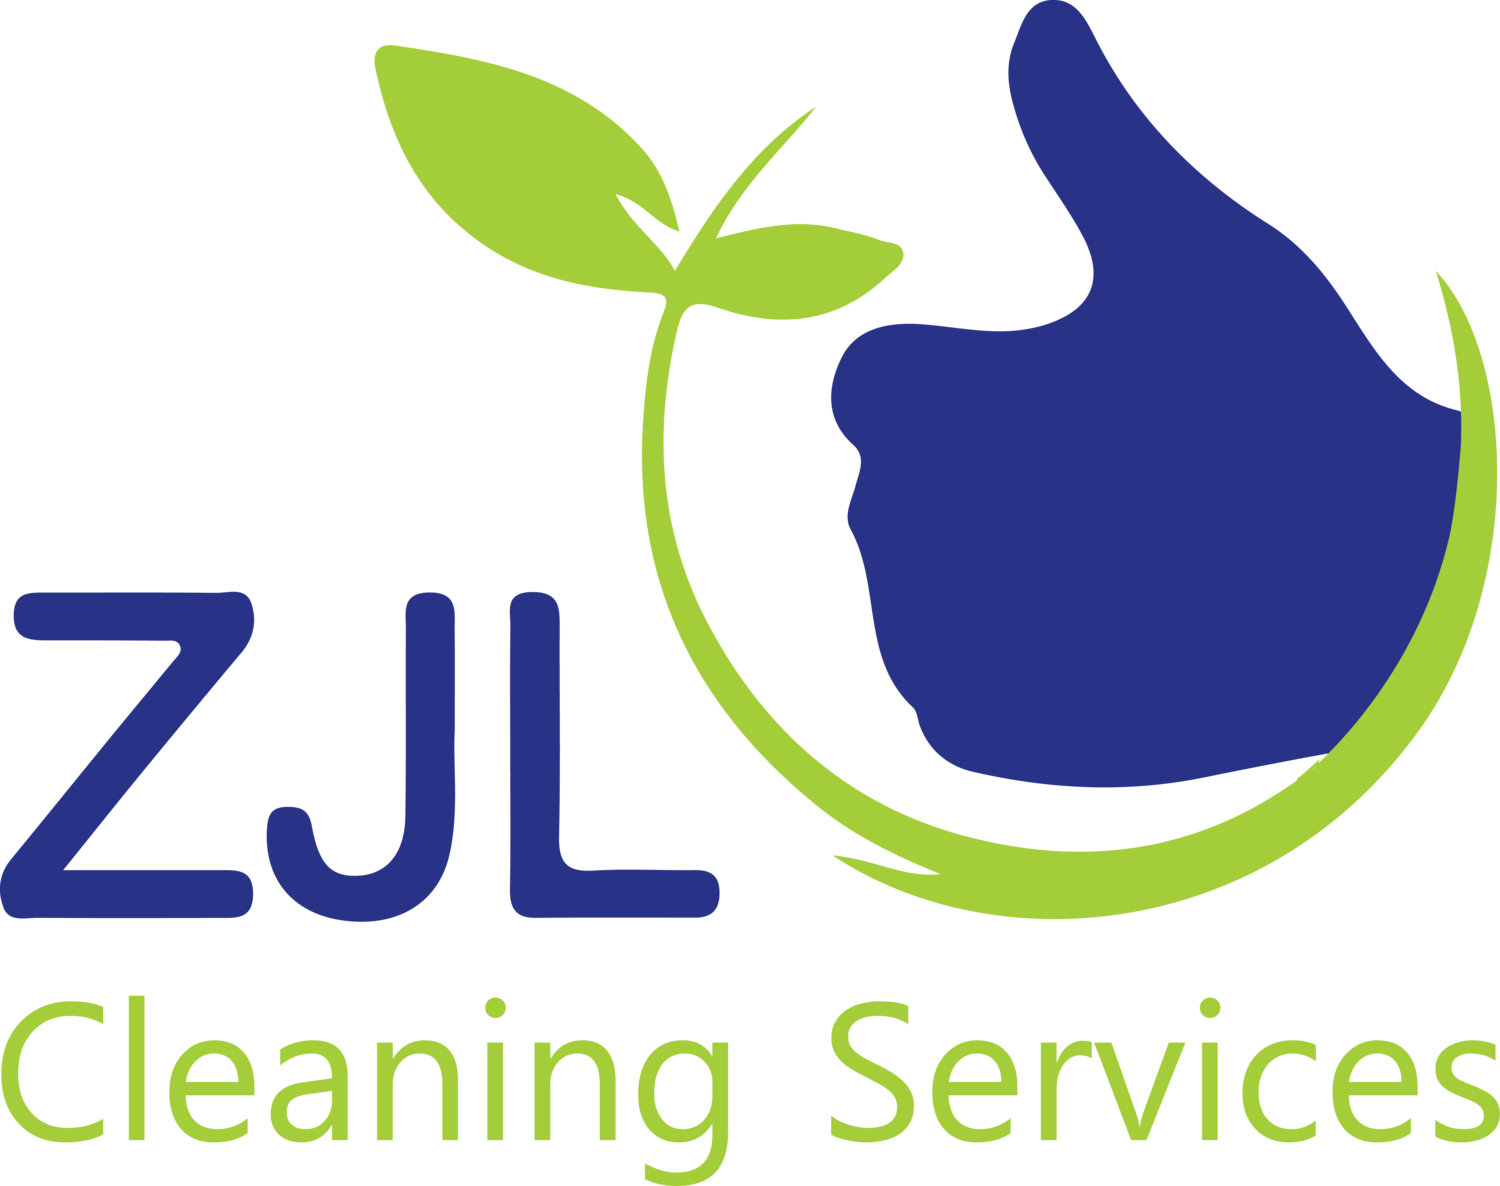 Z.J.L. Cleaning Services